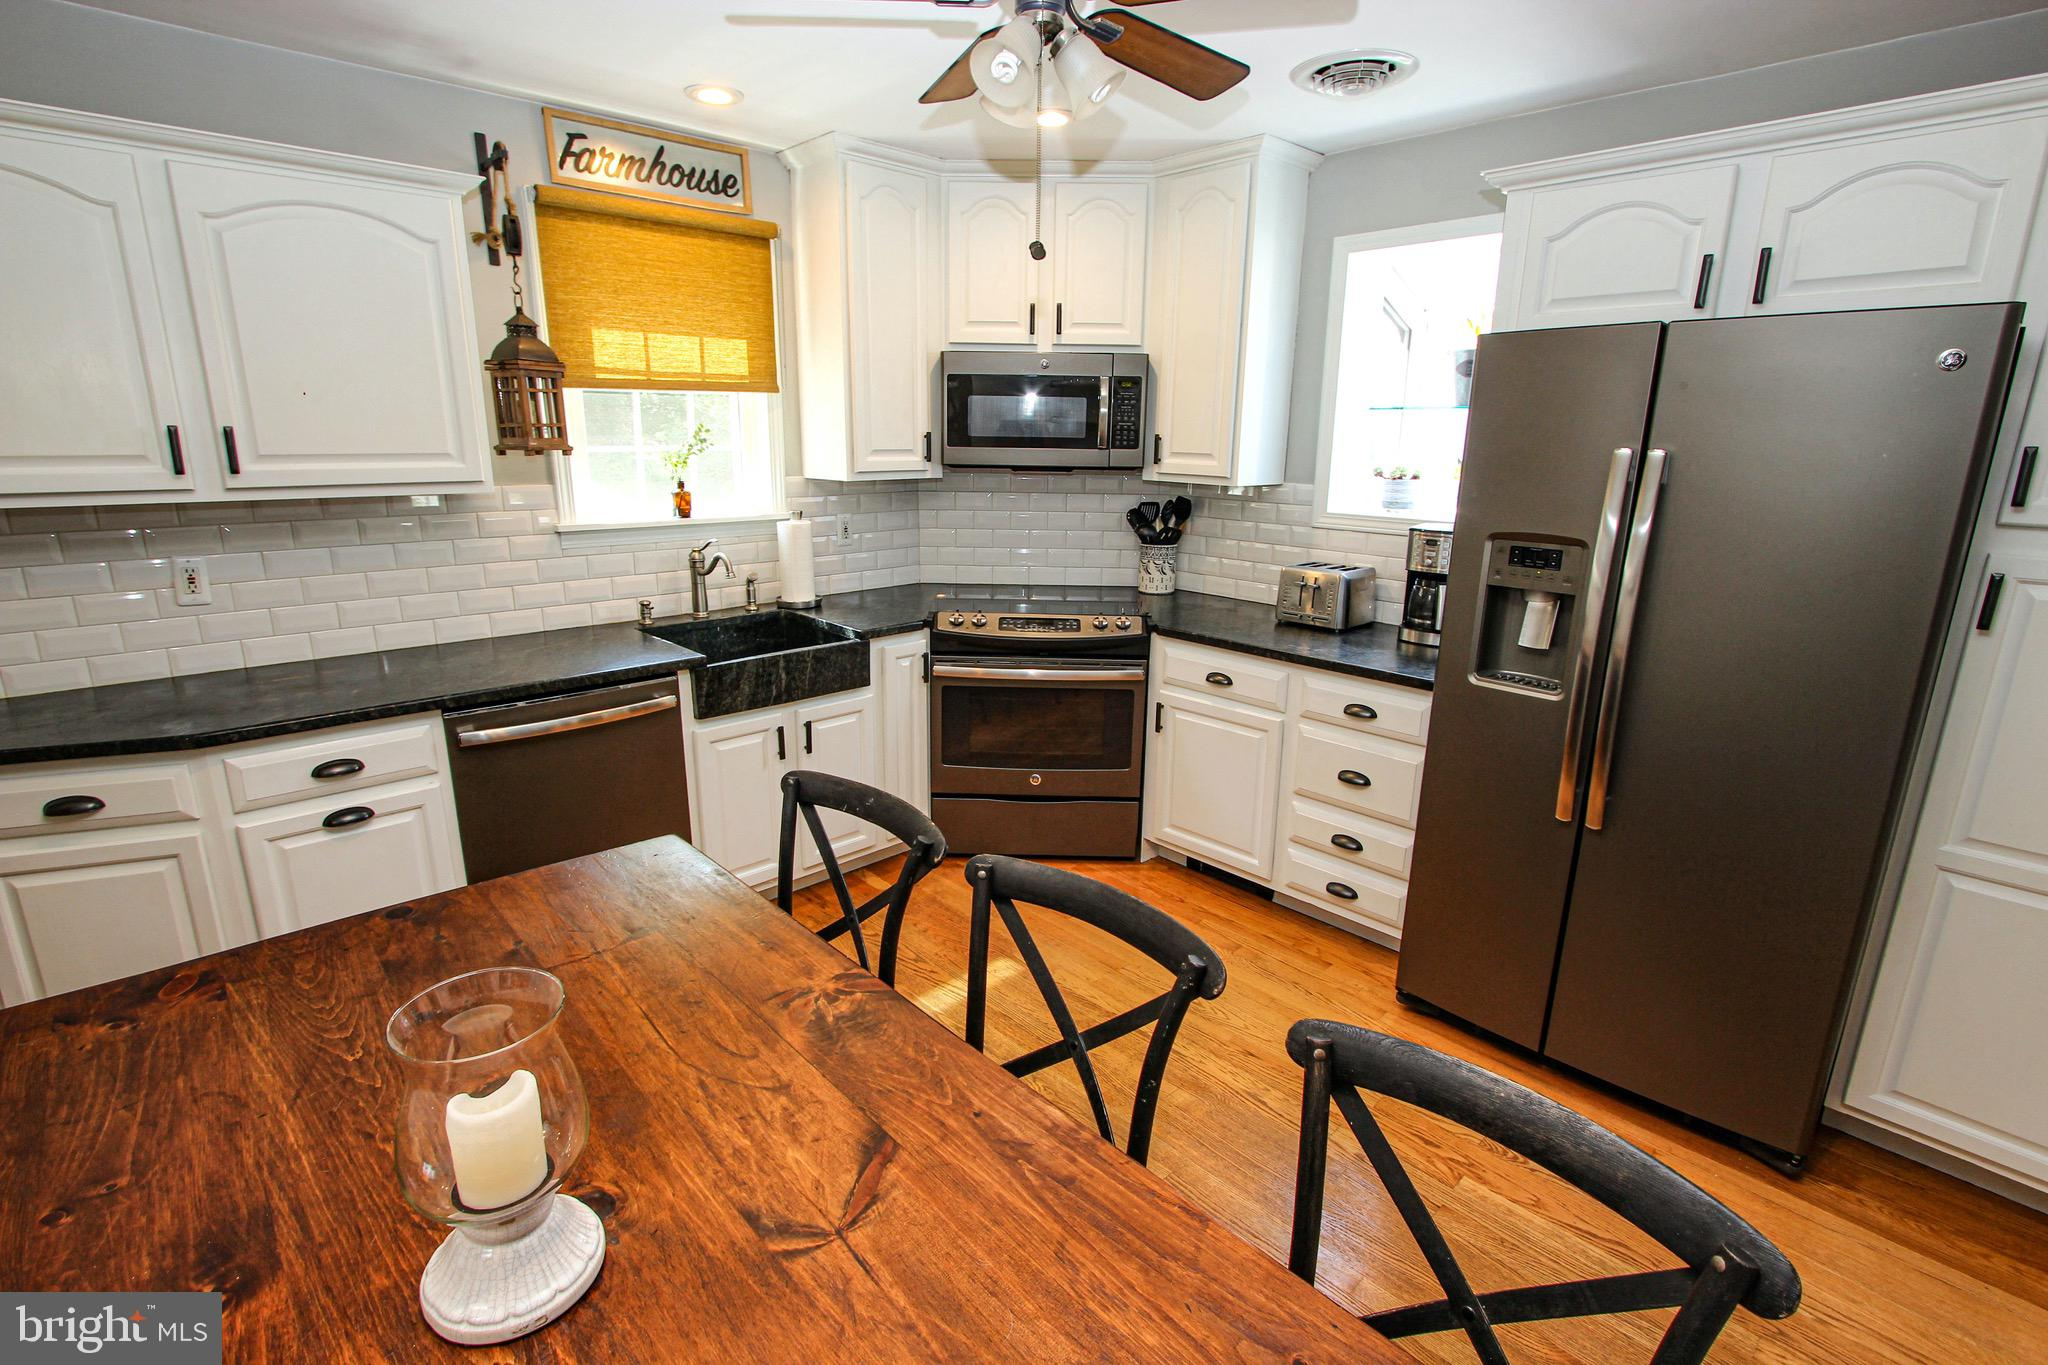 """Pristine Solid Brick Ranch!  You must see this Home! it is Not a Flip but Love and Care Over Time!   There  has Only been Owned by this Family.  Owner's Parents were the Original Owners and Daughter and Husband bought from the Parents. Lovingly Maintained and Improved through the Generations.   Hardwoods throughout the Main level and  Remodeled Farmhouse Kitchen with Expansive Updated Cabinets, Soapstone Solid Countertops, Accented with a Farmhouse Style Sink, Subway Tile Backsplash, Greenhouse Window, Corner Ceramic-Top Range with Built-in Microwave above and Stainless appliances which are included.  Out of the Kitchen Door to the 15 x 28 Patio that Overlooks the Vinyl Fenced Yard Backing to Wooded Parkland!  The Family Room in the Basement Also Walks out to the Serene Backyard and Patio. 19 ft x 31 ft Family Room is Perfection with New Vinyl Plank flooring, Recessed Lights, Exposed Wooden Beam, Stone Accented Columns and Electric Fireplace.  Then to the Unbelievable Full Bathroom with Vinyl Plank from Floor to Walls to Ceiling with Walk-In Shower with Glass Enclosure, Dry-Sink Type Vanity and Wash Basin with """"Well Pump"""" Type Fixture.  Upstairs to the Open and Bright Living Room down the Hall to the Remodeled Full Bath and 3 Bedrooms. Every room in this home is Perfect.   Economical Natural Gas Baseboard Heat and Central Air Conditioning.  This Home is Exceptional!  Hurry to make it yours!  Showing are for 3 days, starting Thursday,7/1 to 7/3.  Hurry to secure your Time slot."""